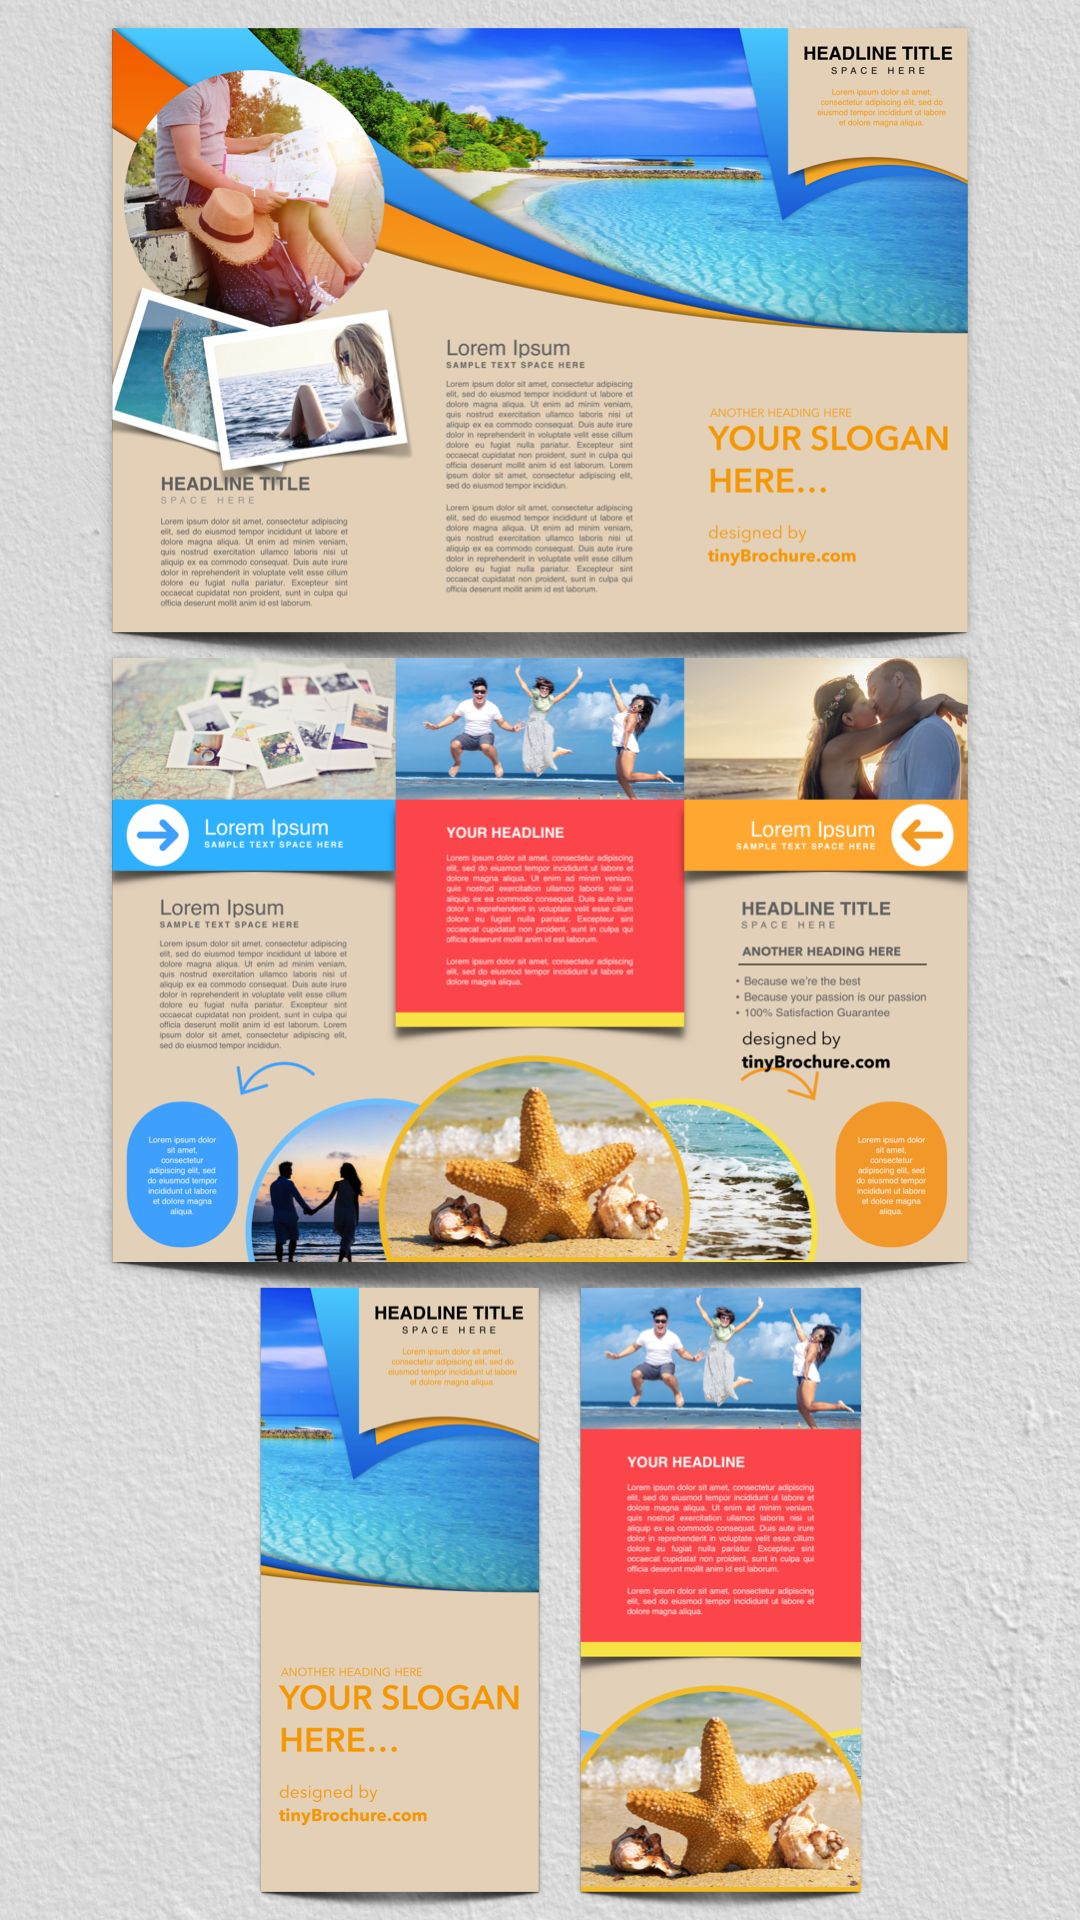 The Astounding Travel Brochure Template Google Docs Graphic Design With Science Brochure Template Goo Travel Brochure Design Tourism Brochure Travel Brochure